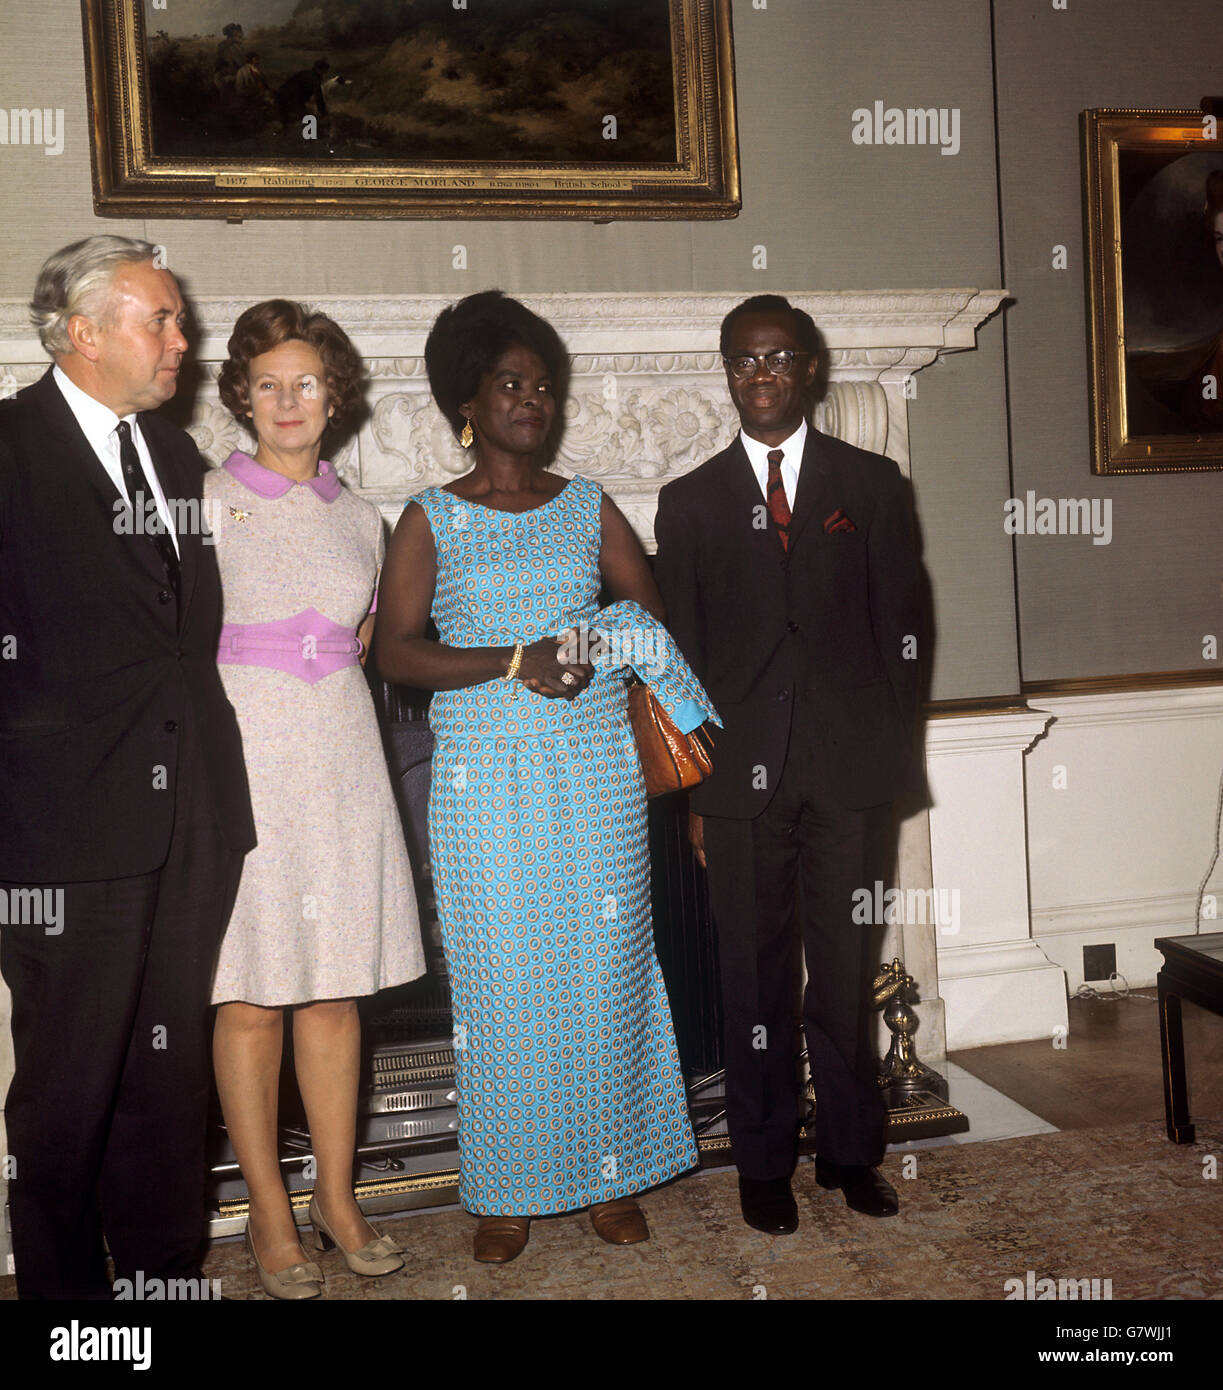 Wife Of The Prime Minister Harold Wilson Stock Photos & Wife Of The ...